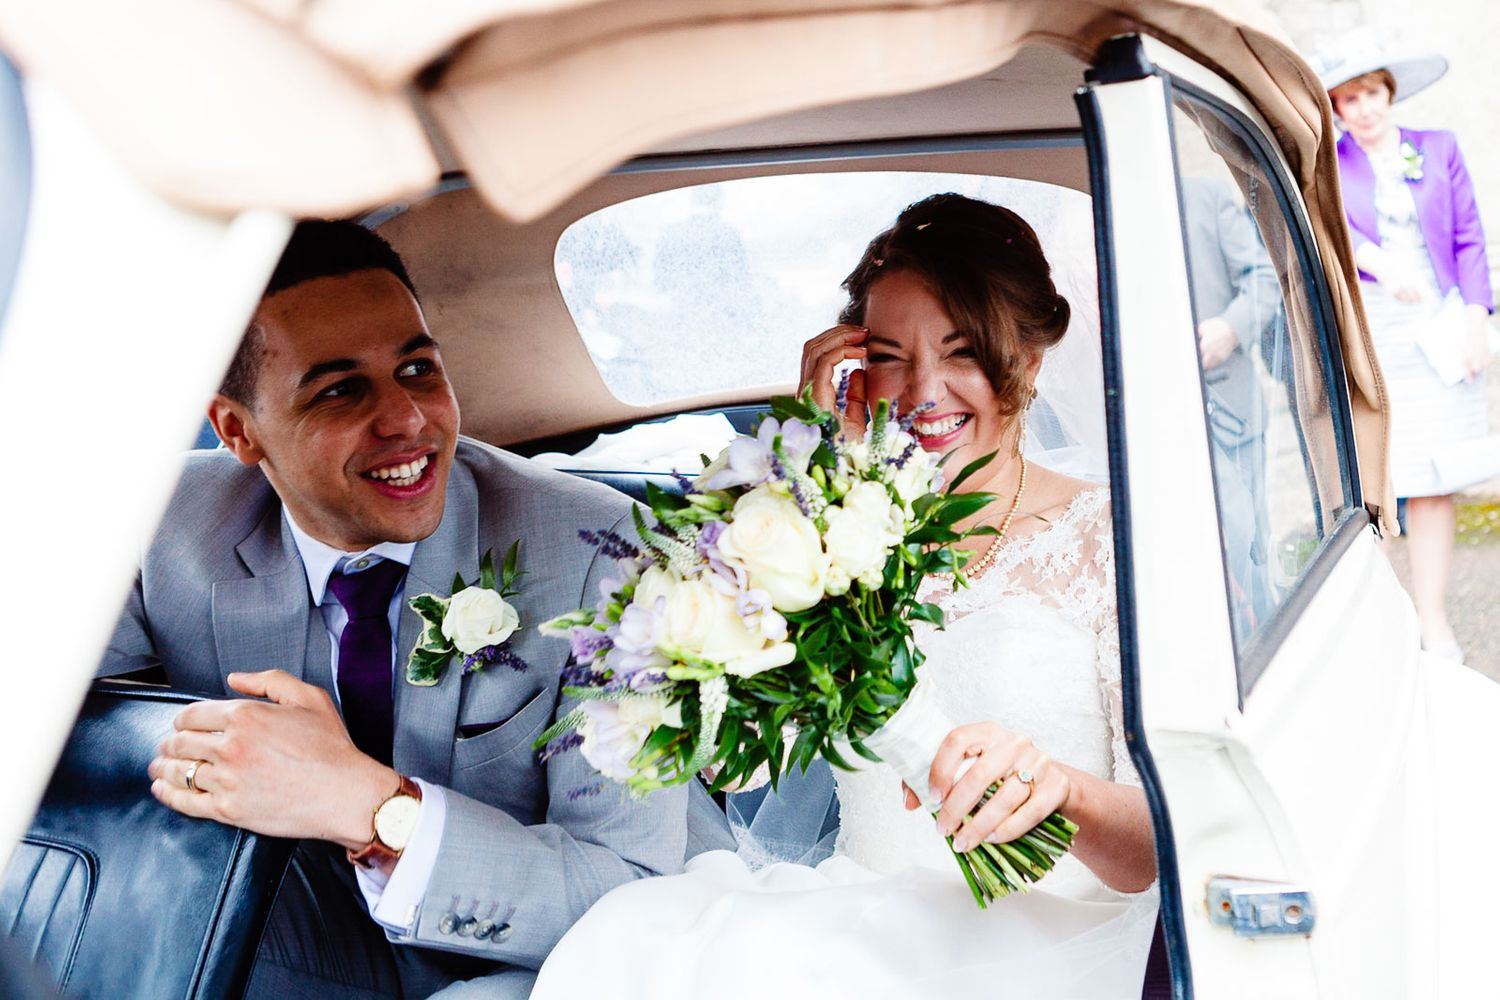 photograph of wedding couple in car after church ceremony